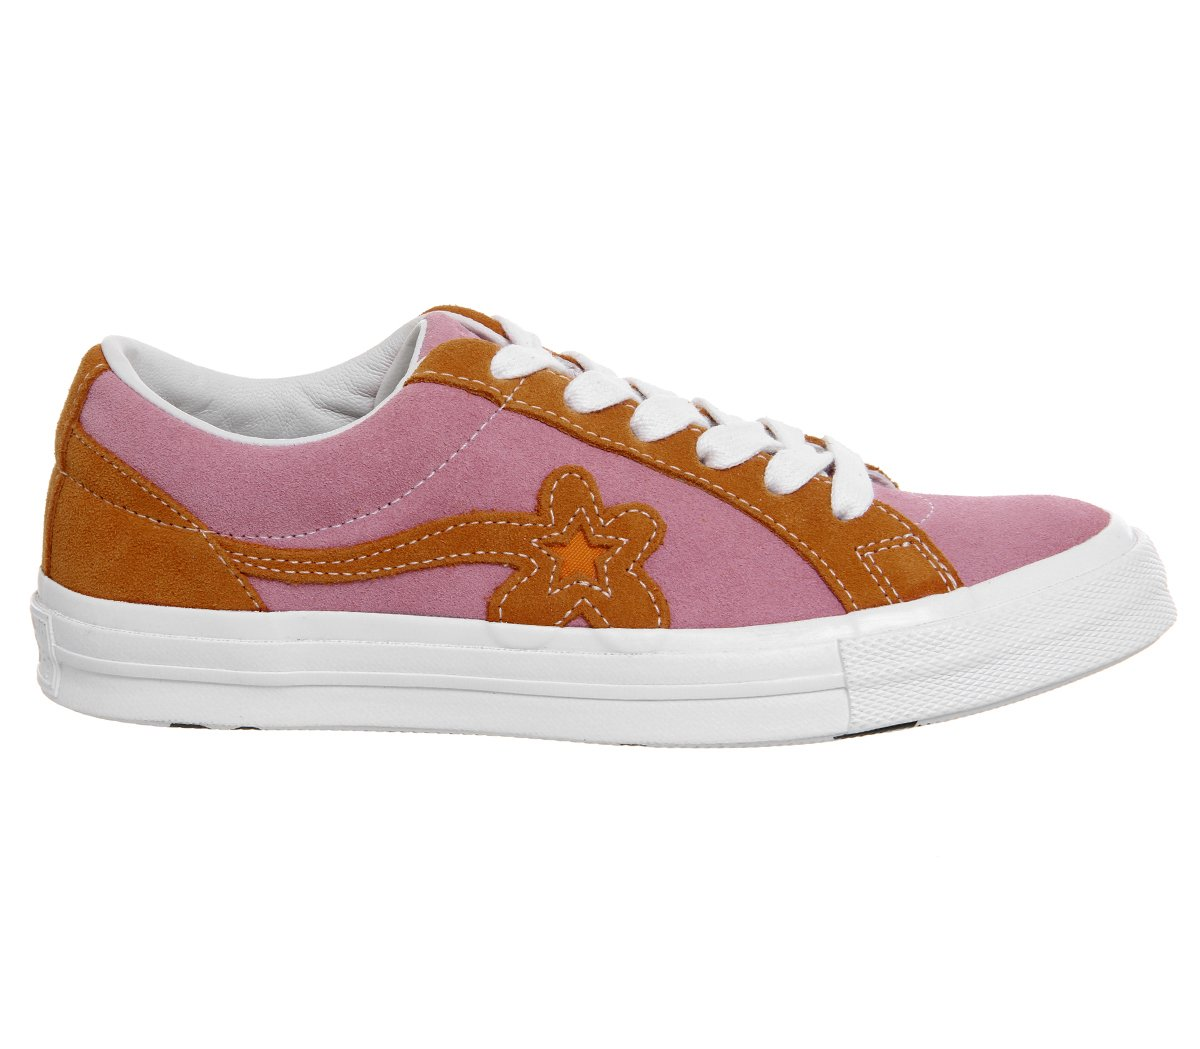 Converse One Star Ox Tyler The Creator G Buy Online In Albania At Desertcart